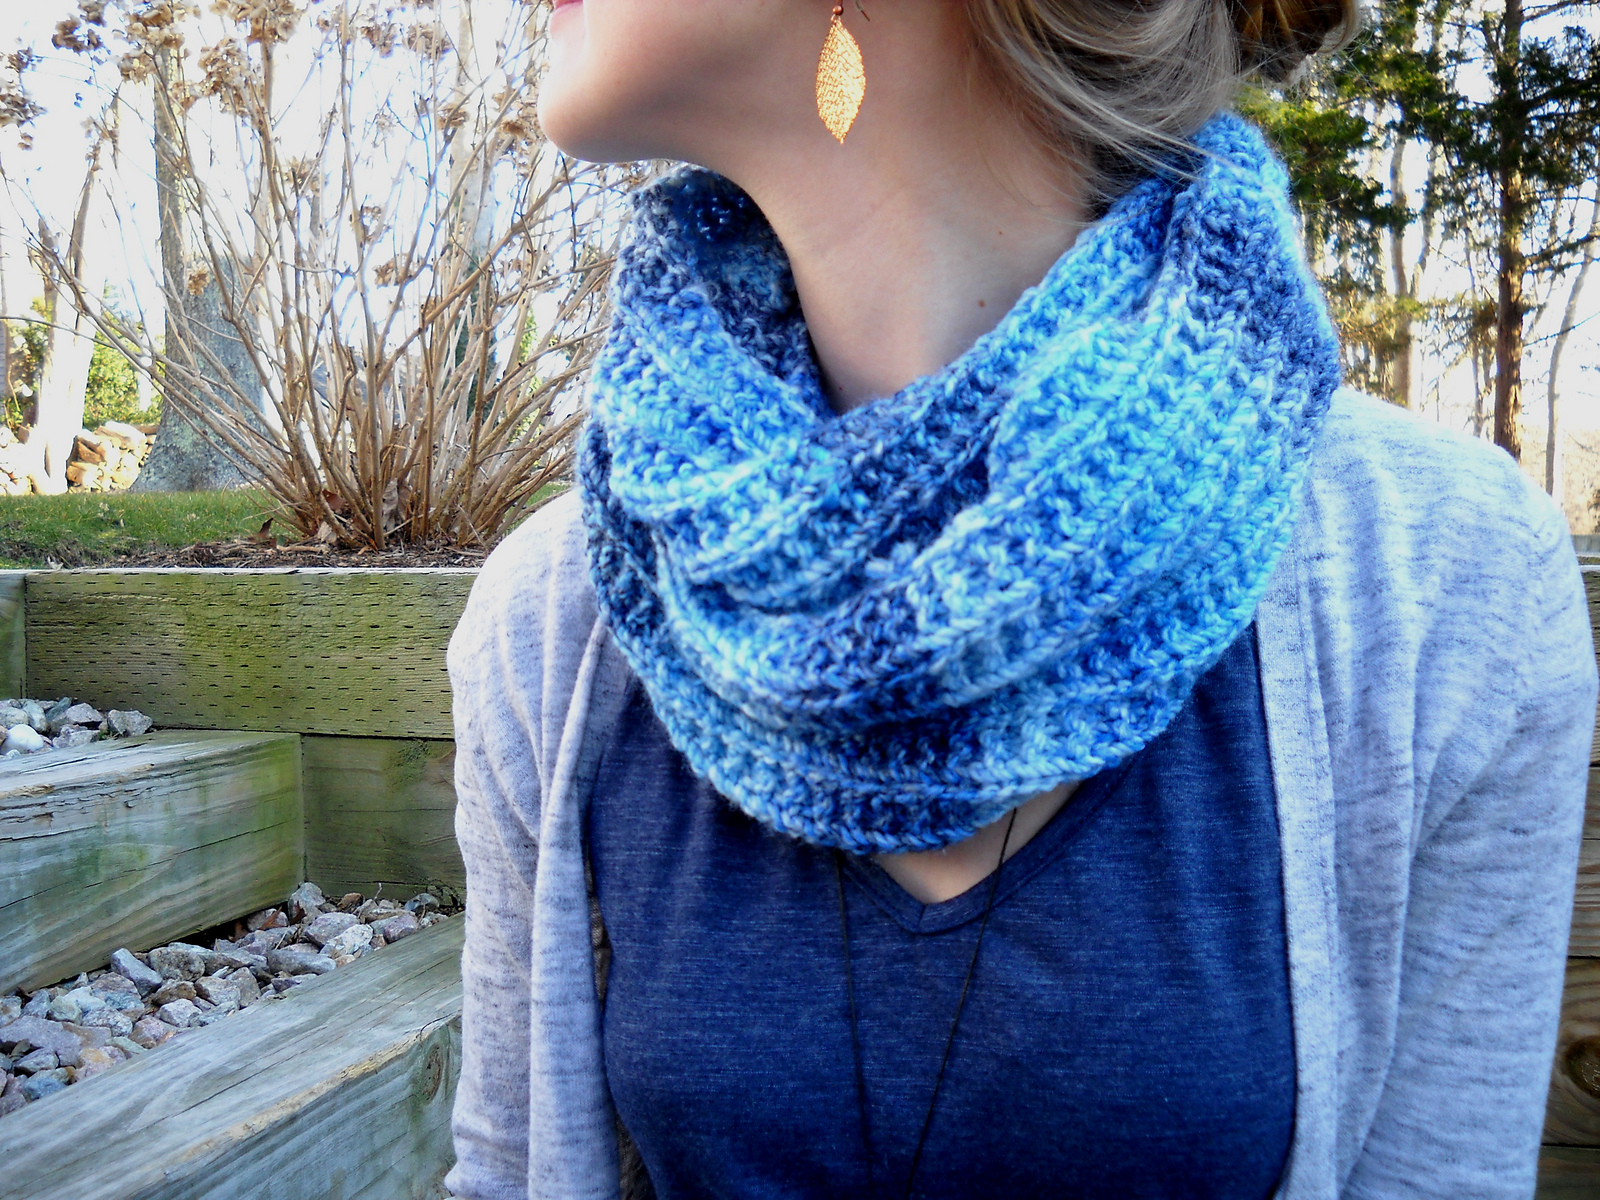 7 Different Ways To Tie Scarves In Style - Baggout